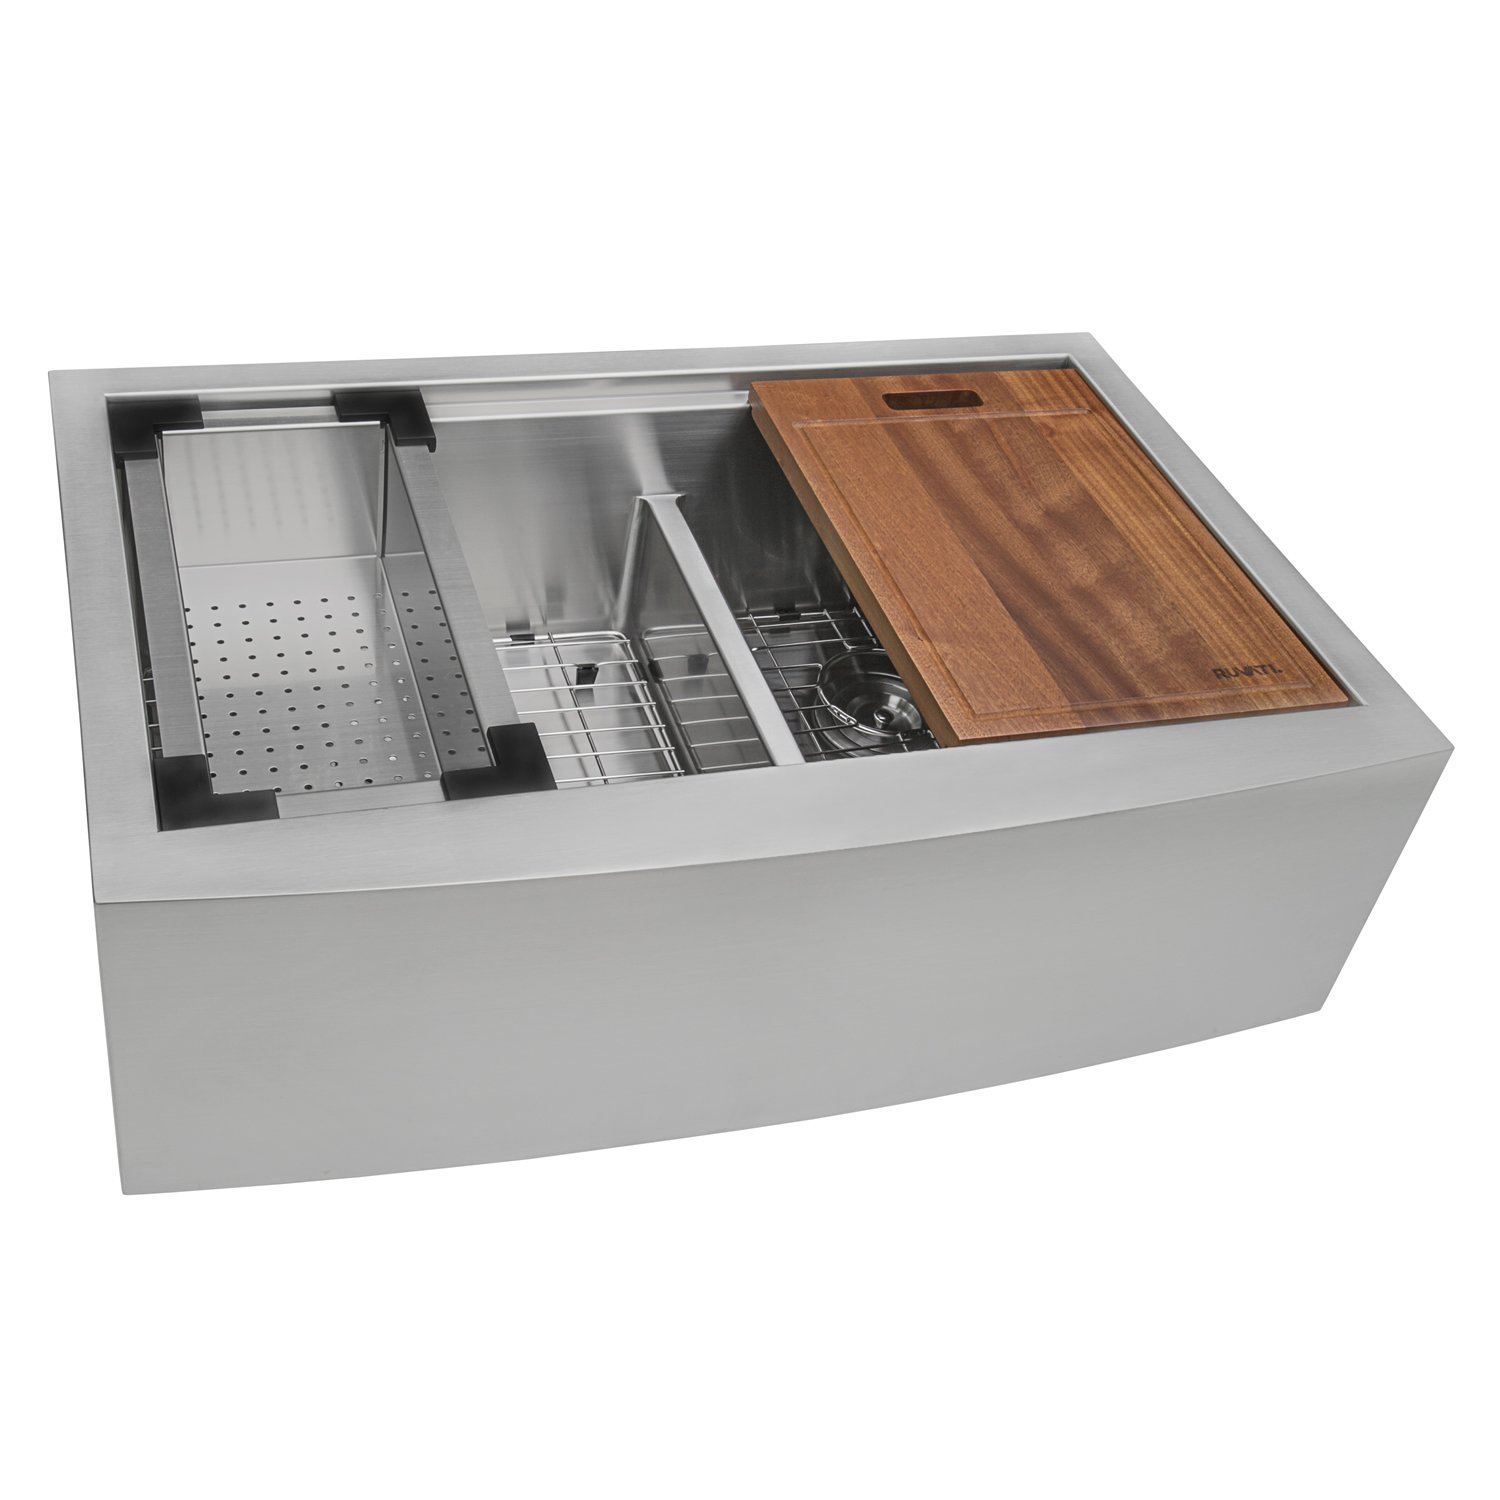 Ruvati 33'' Apron-front Workstation Low-Divide Double Bowl 60/40 Farmhouse Kitchen Sink 16 Gauge Stainless Steel - RVH9201 by Ruvati